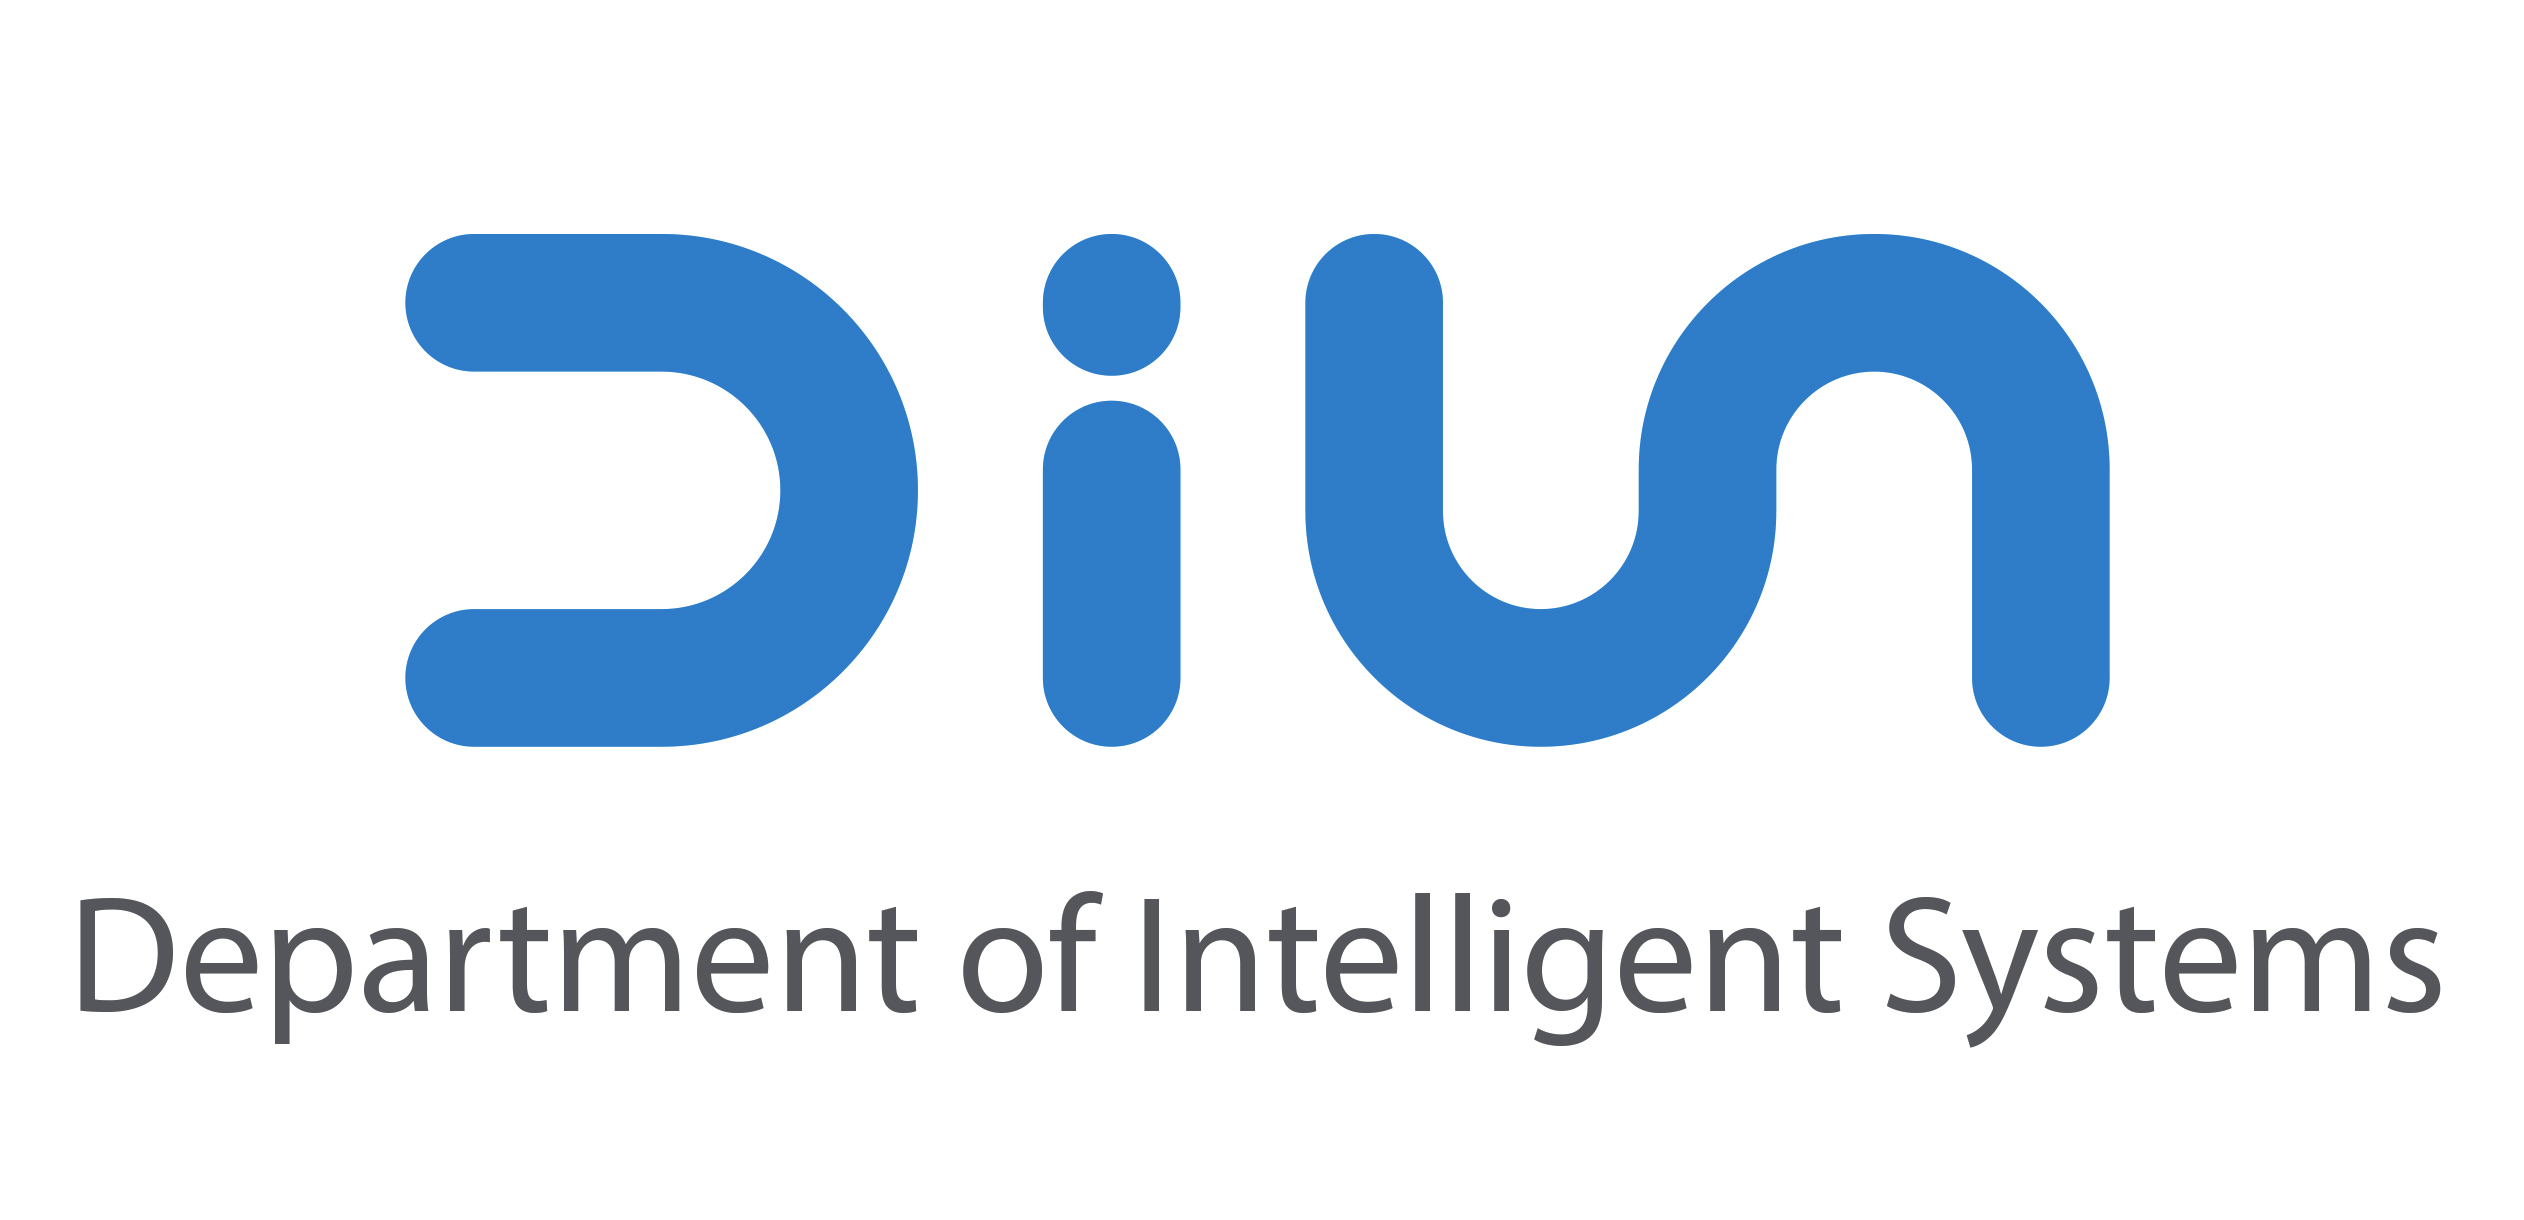 Department of Intelligent Systems logo - Slovenia